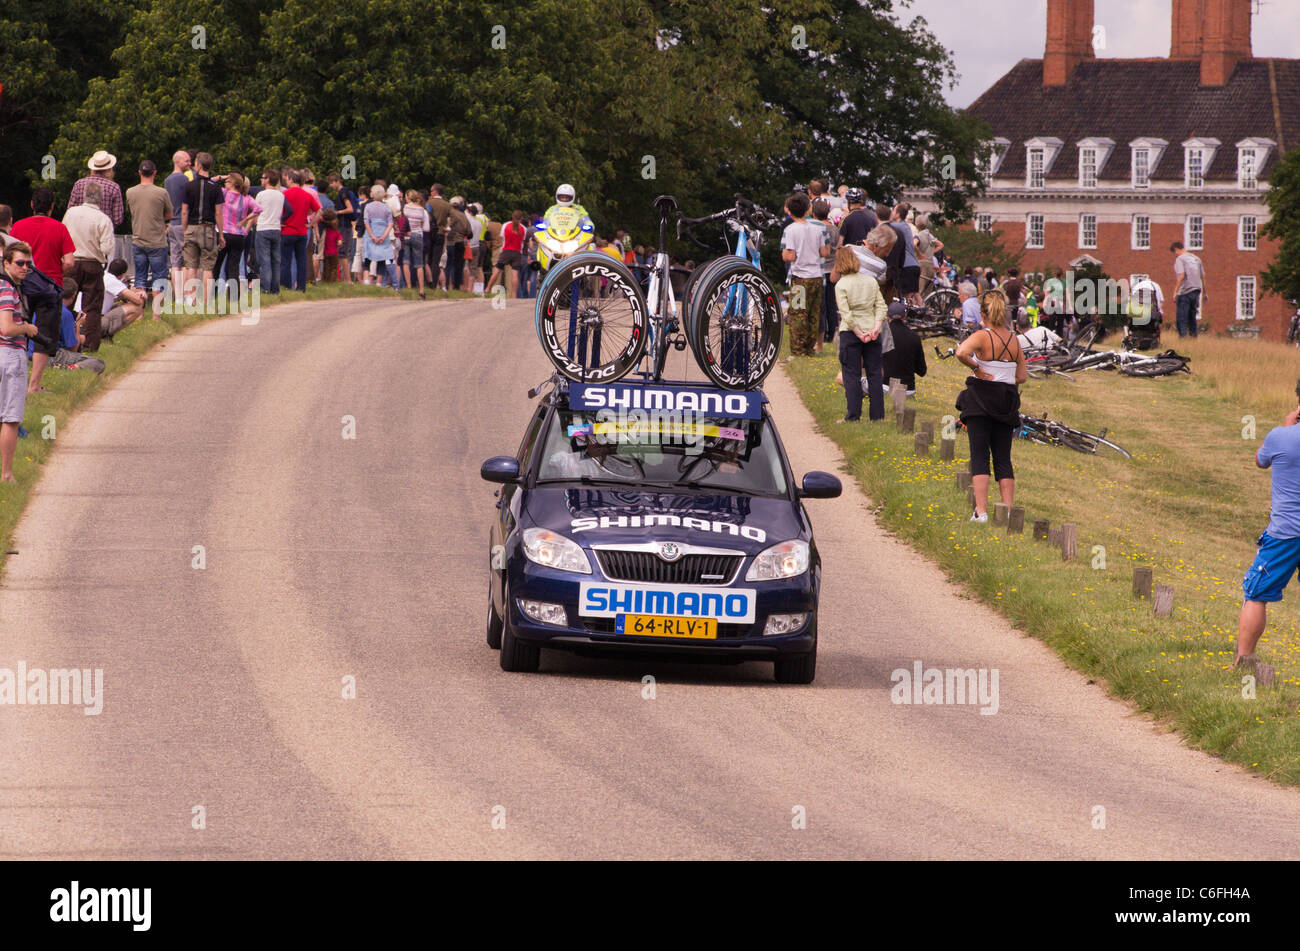 The Shimano support vehicle sweeps through Richmond Park before competitors in the London Surrey Classic Cycle Race - Stock Image